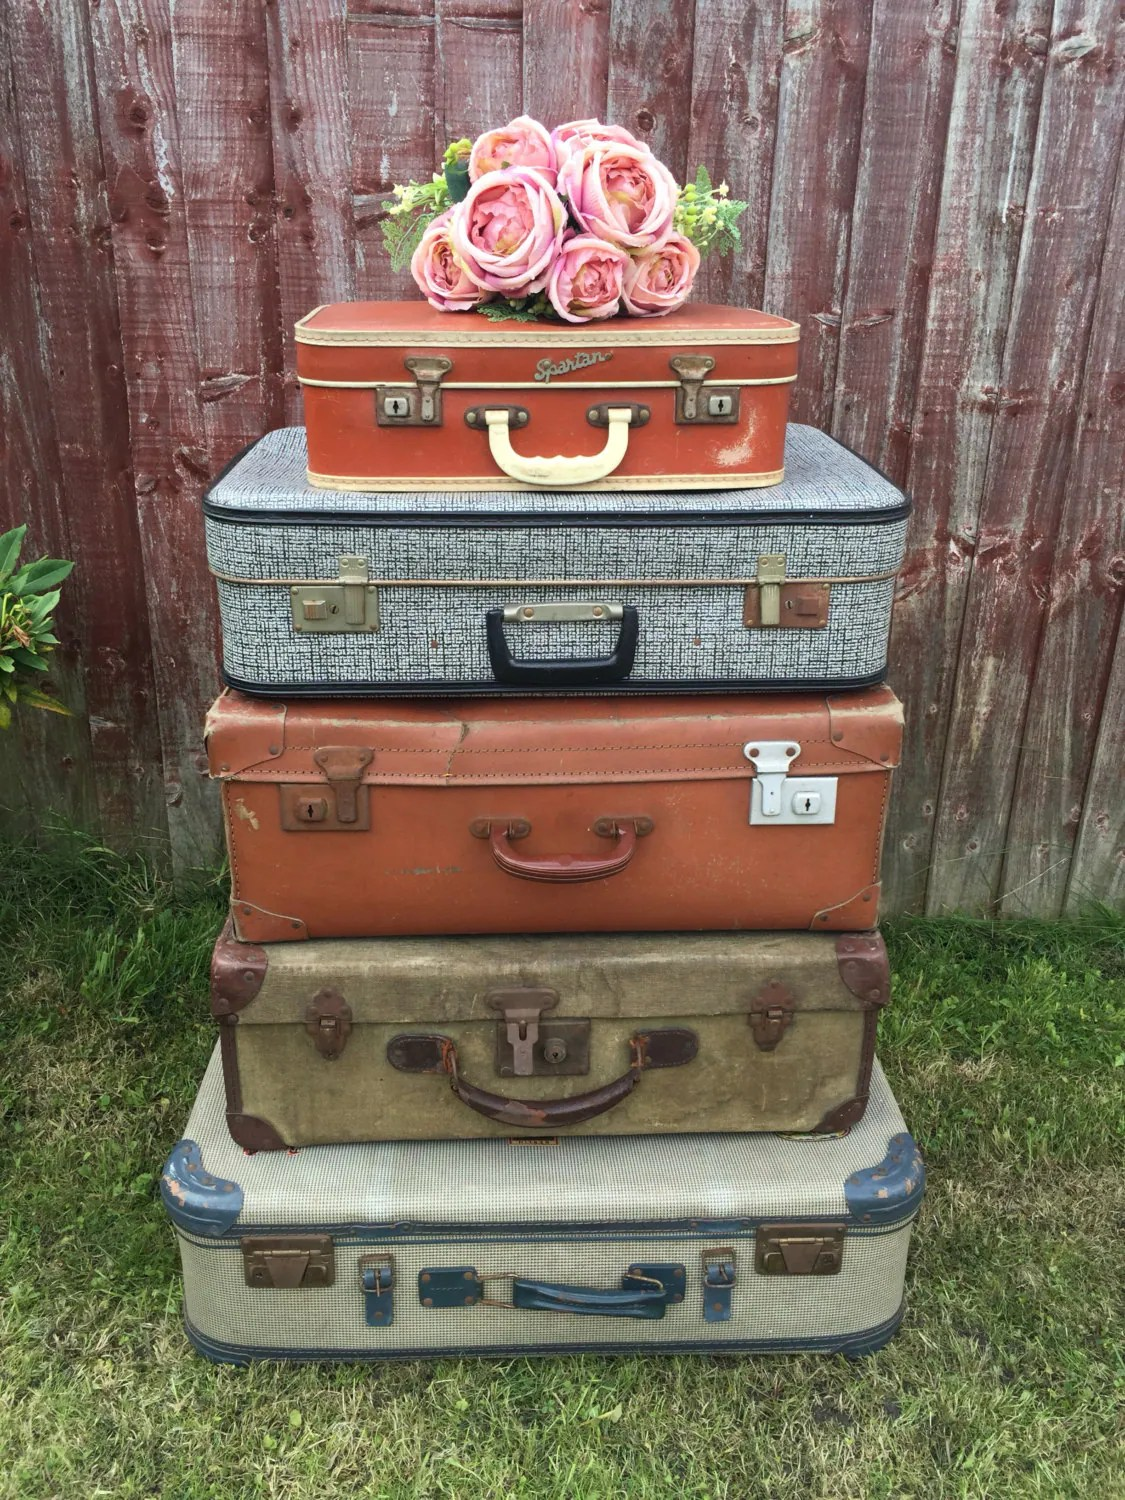 Vintage Decorative Suitcases Vintage Suitcases Vintage Luggage Vintage Home Decor